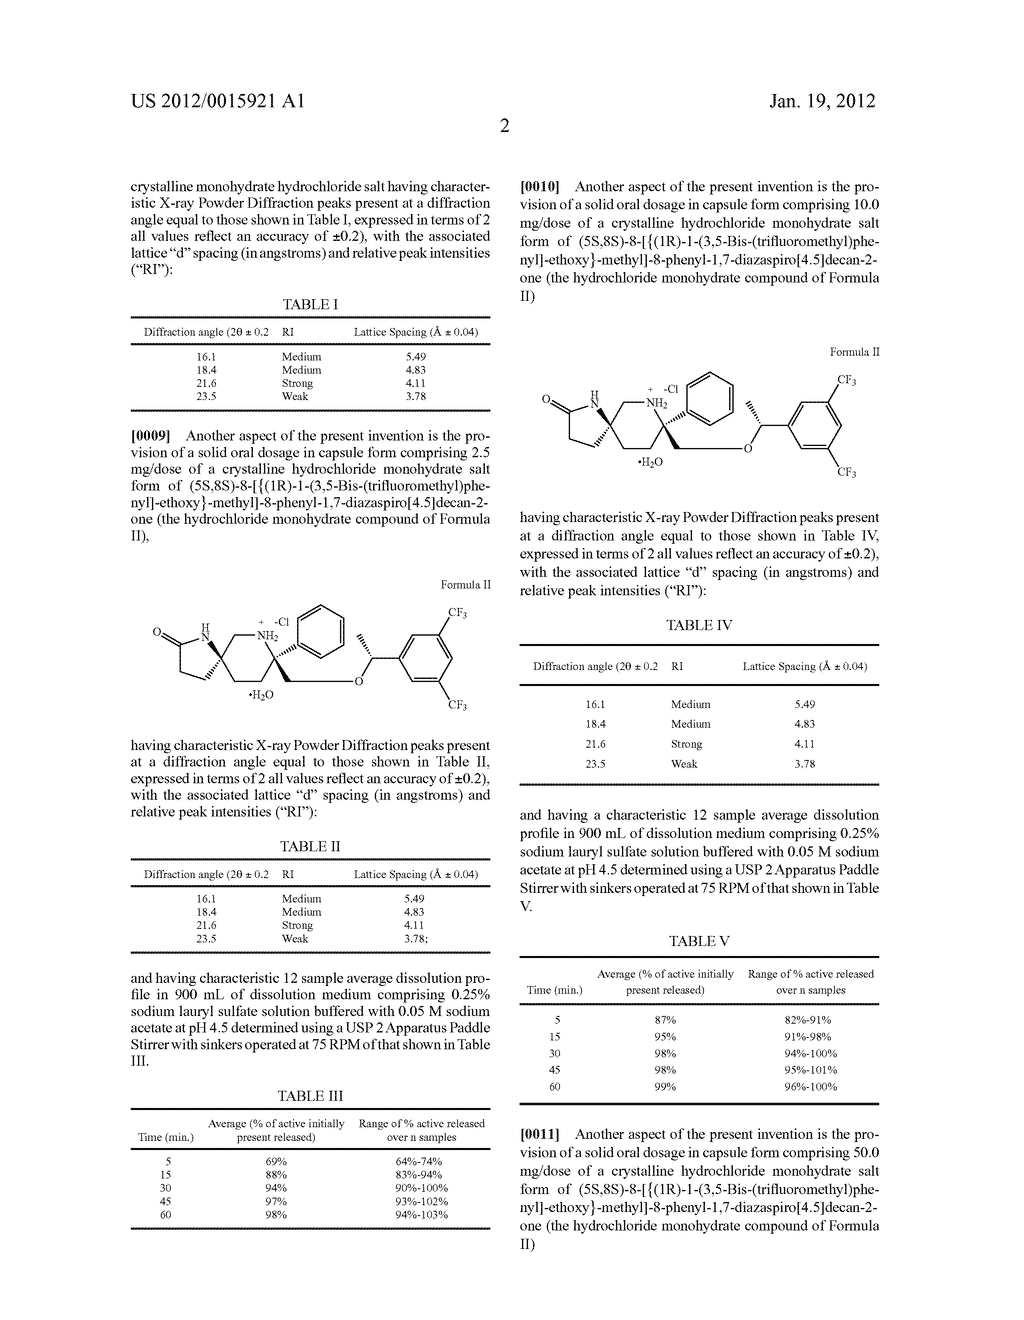 PHARMACEUTICAL FORMULATIONS:SALTS OF     8-[1-3,5-BIS-(TRIFLUOROMETHYL)PHENYL)-ETHOXYMETHYL]-8-PHENYL-1,7-DIAZA-SP-    IRO[4.5]DECAN-2-ONE AND TREATMENT METHODS USING THE SAME - diagram, schematic, and image 06